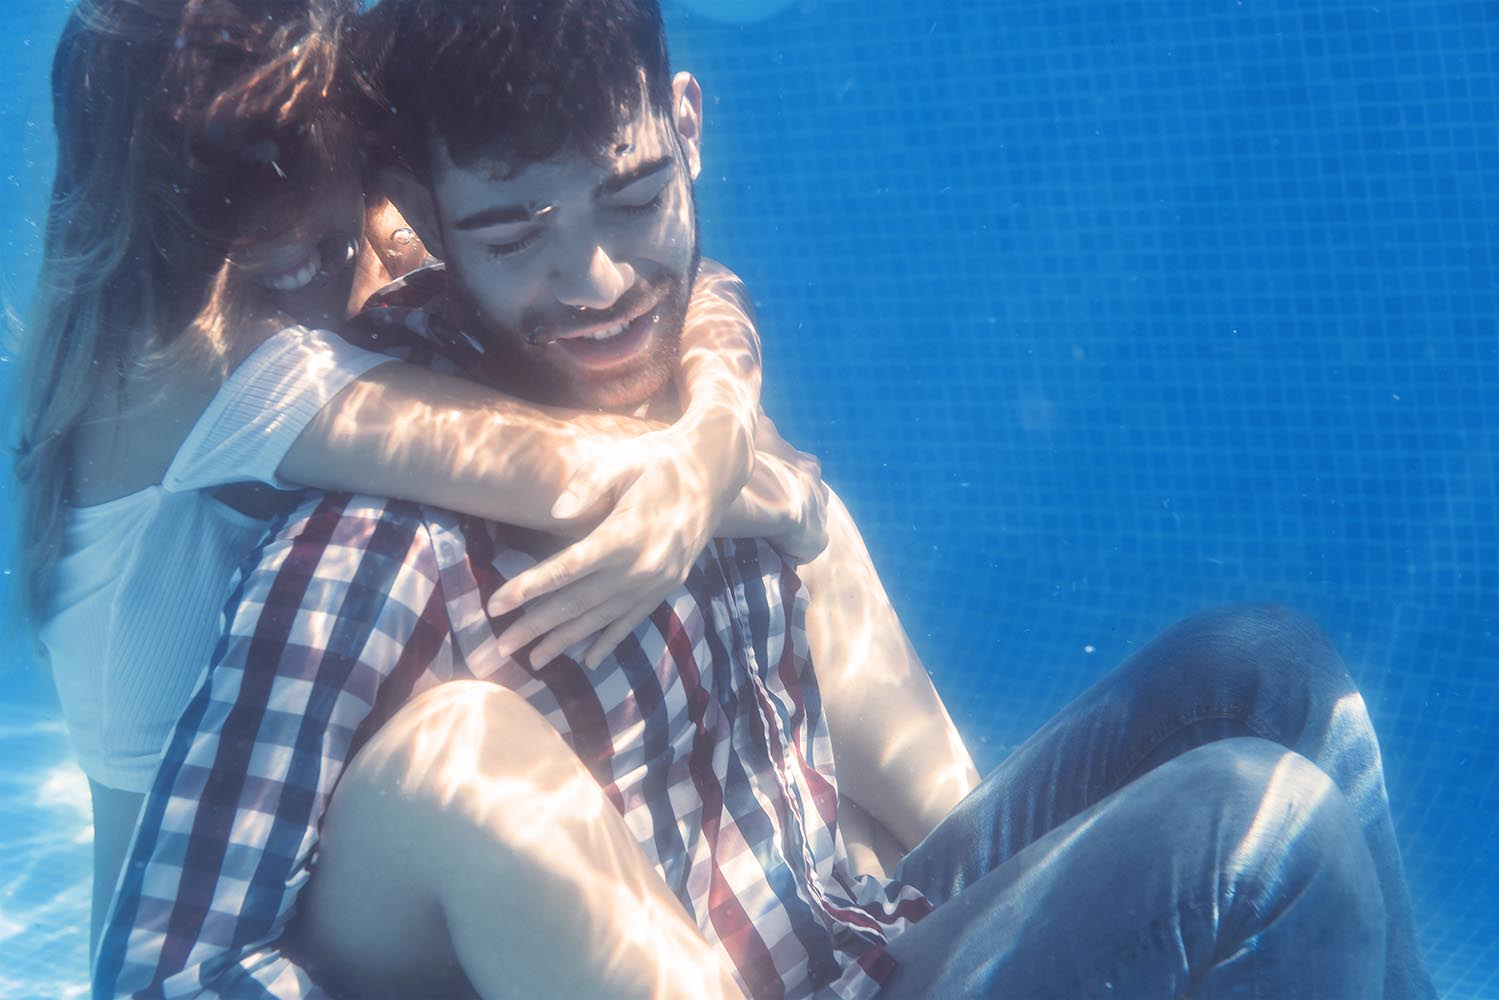 Couple embracing underwater